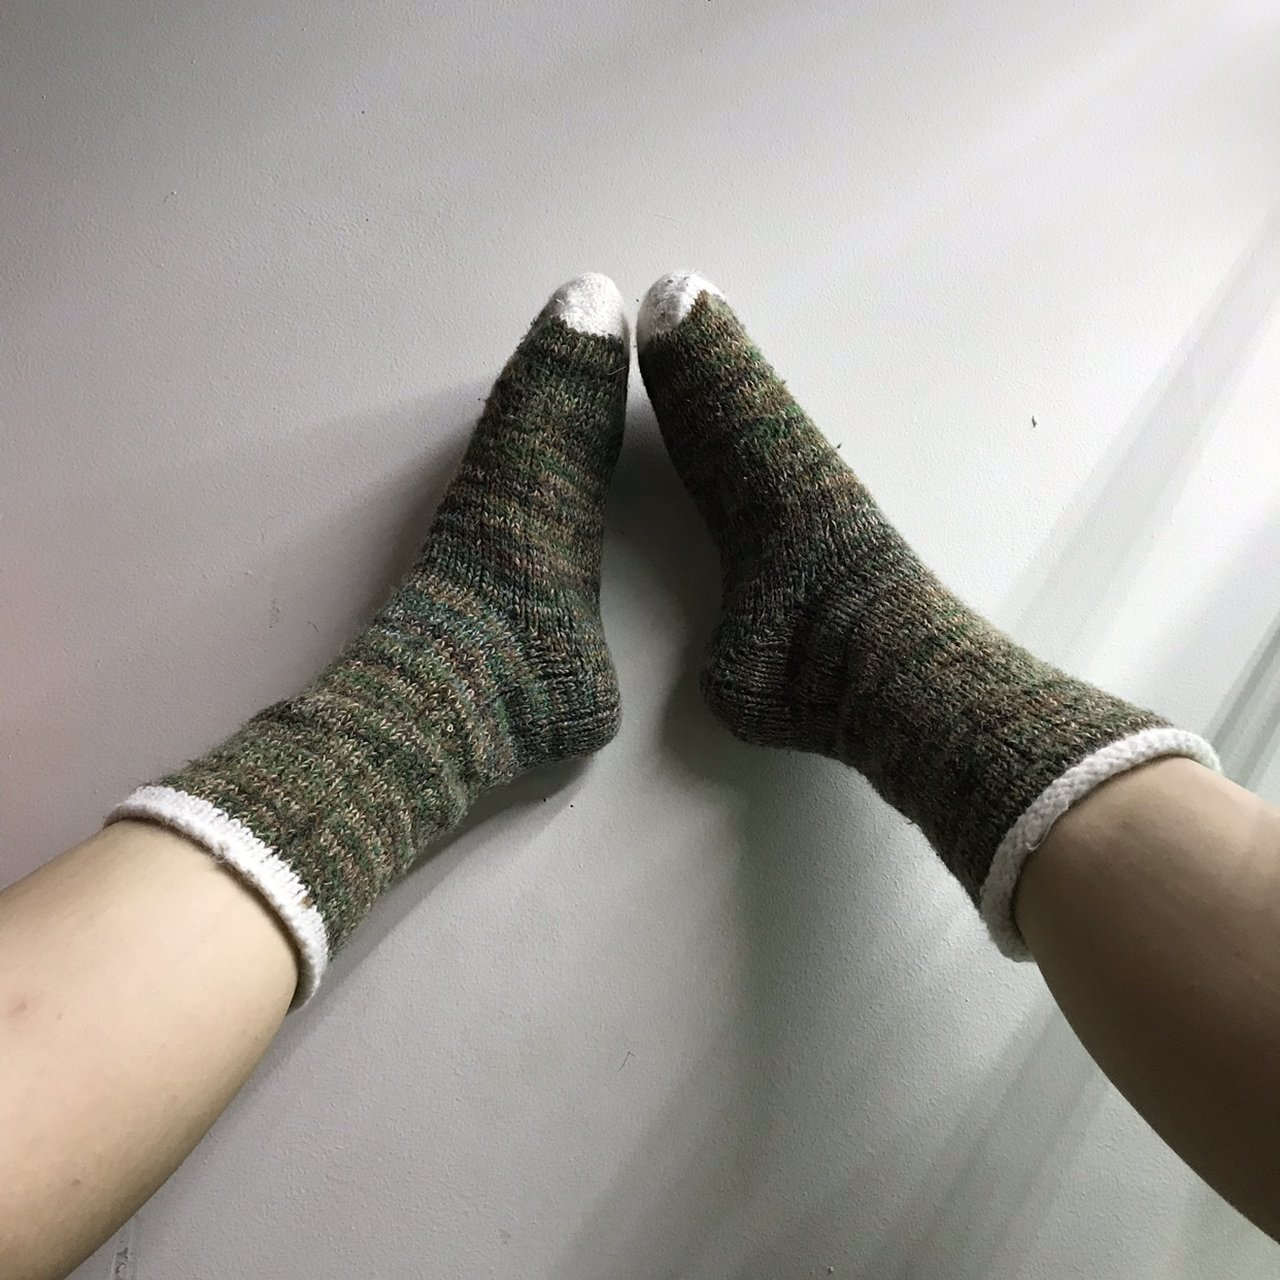 🐑hand crafted wool crochet socks🐑 these babies are sooooo - Depop 37bec91b0